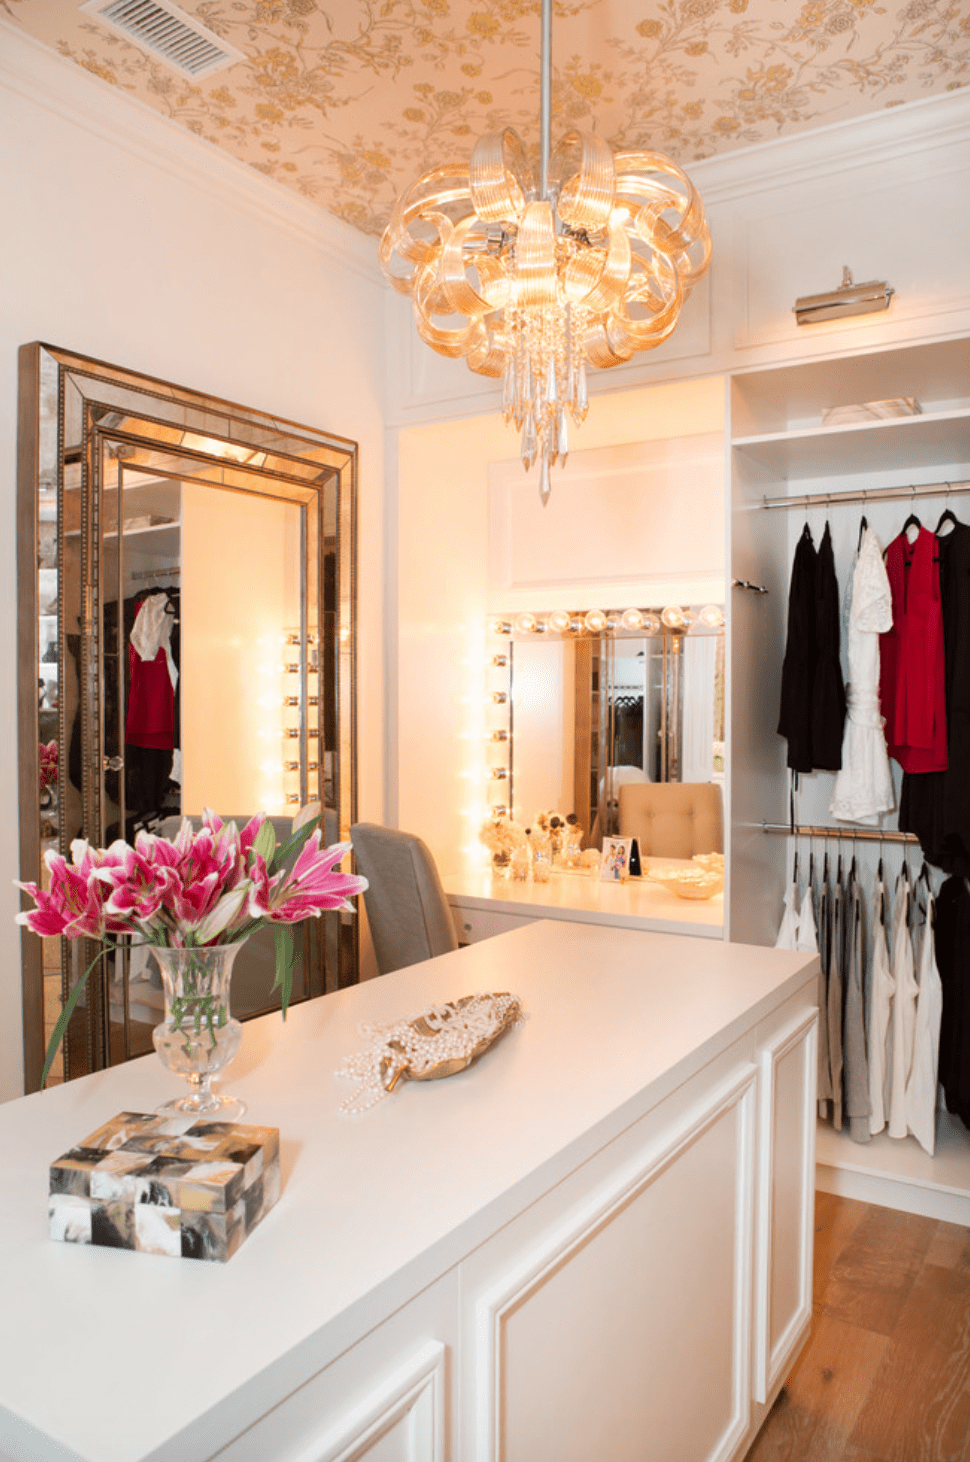 Wallpapered ceiling and white cabinets in custom dream closet